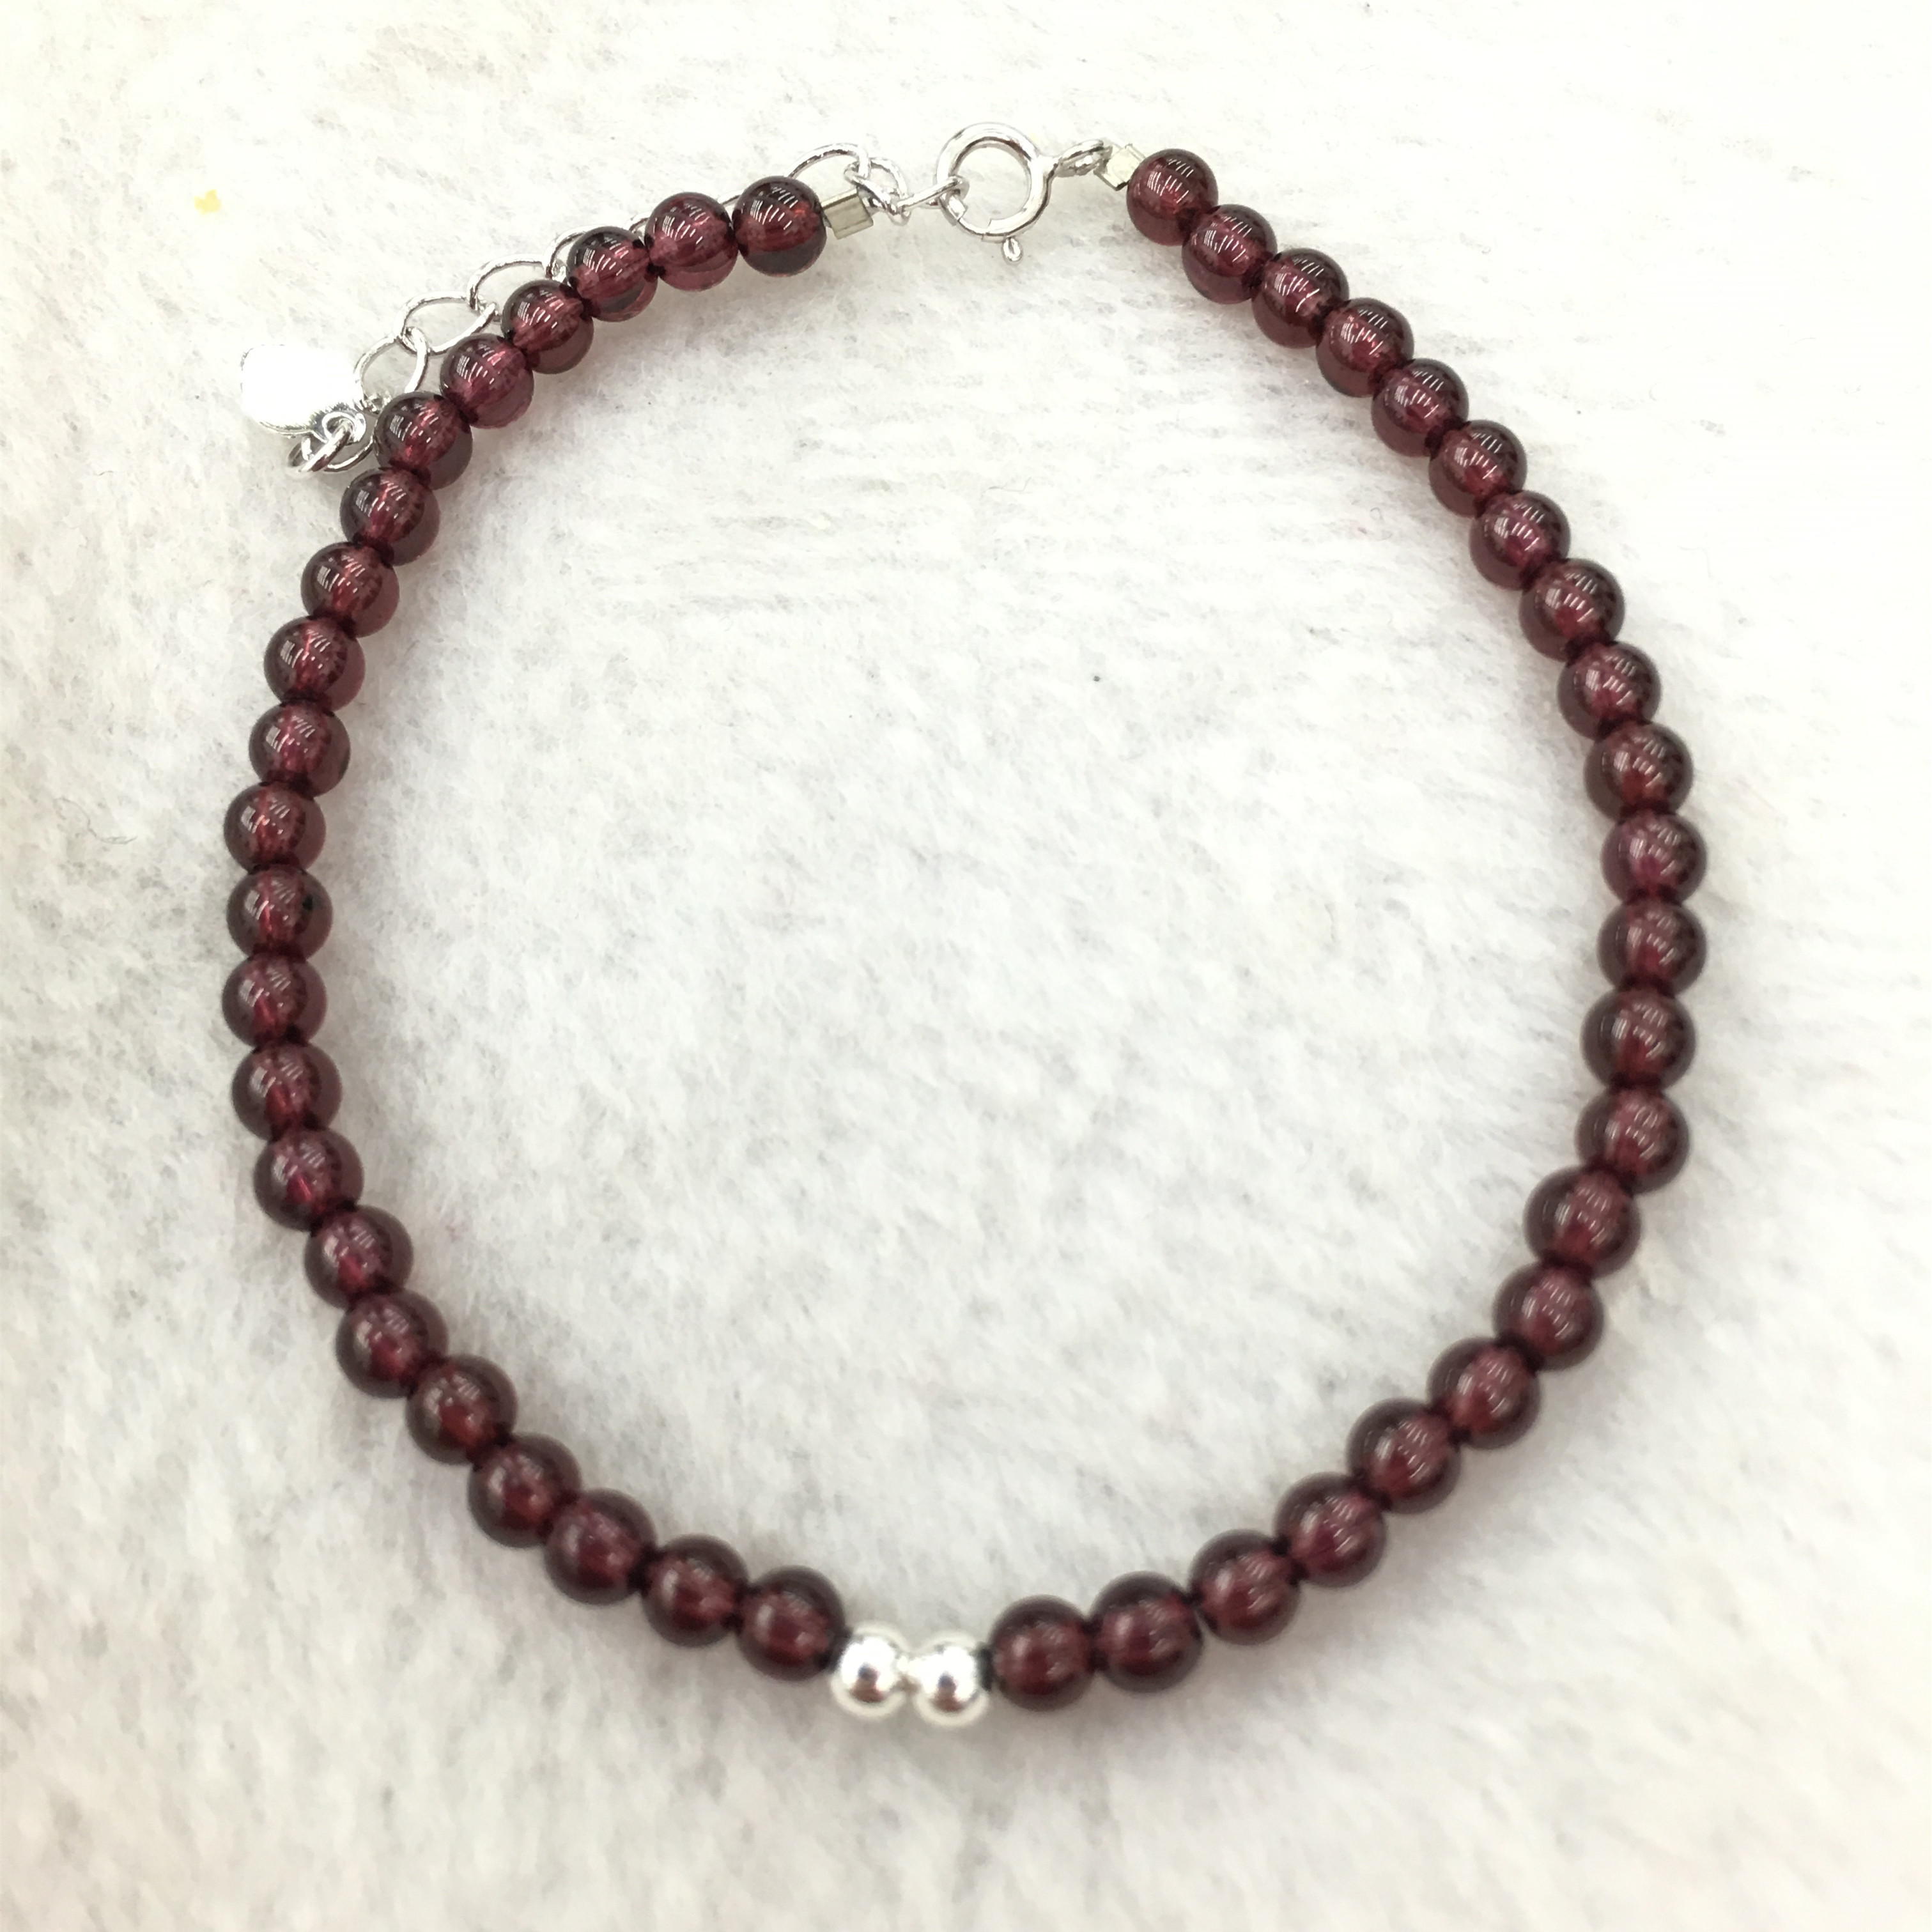 Suqing pearl natural crystal womens standard natural high permeability wine garnet single ring bracelet